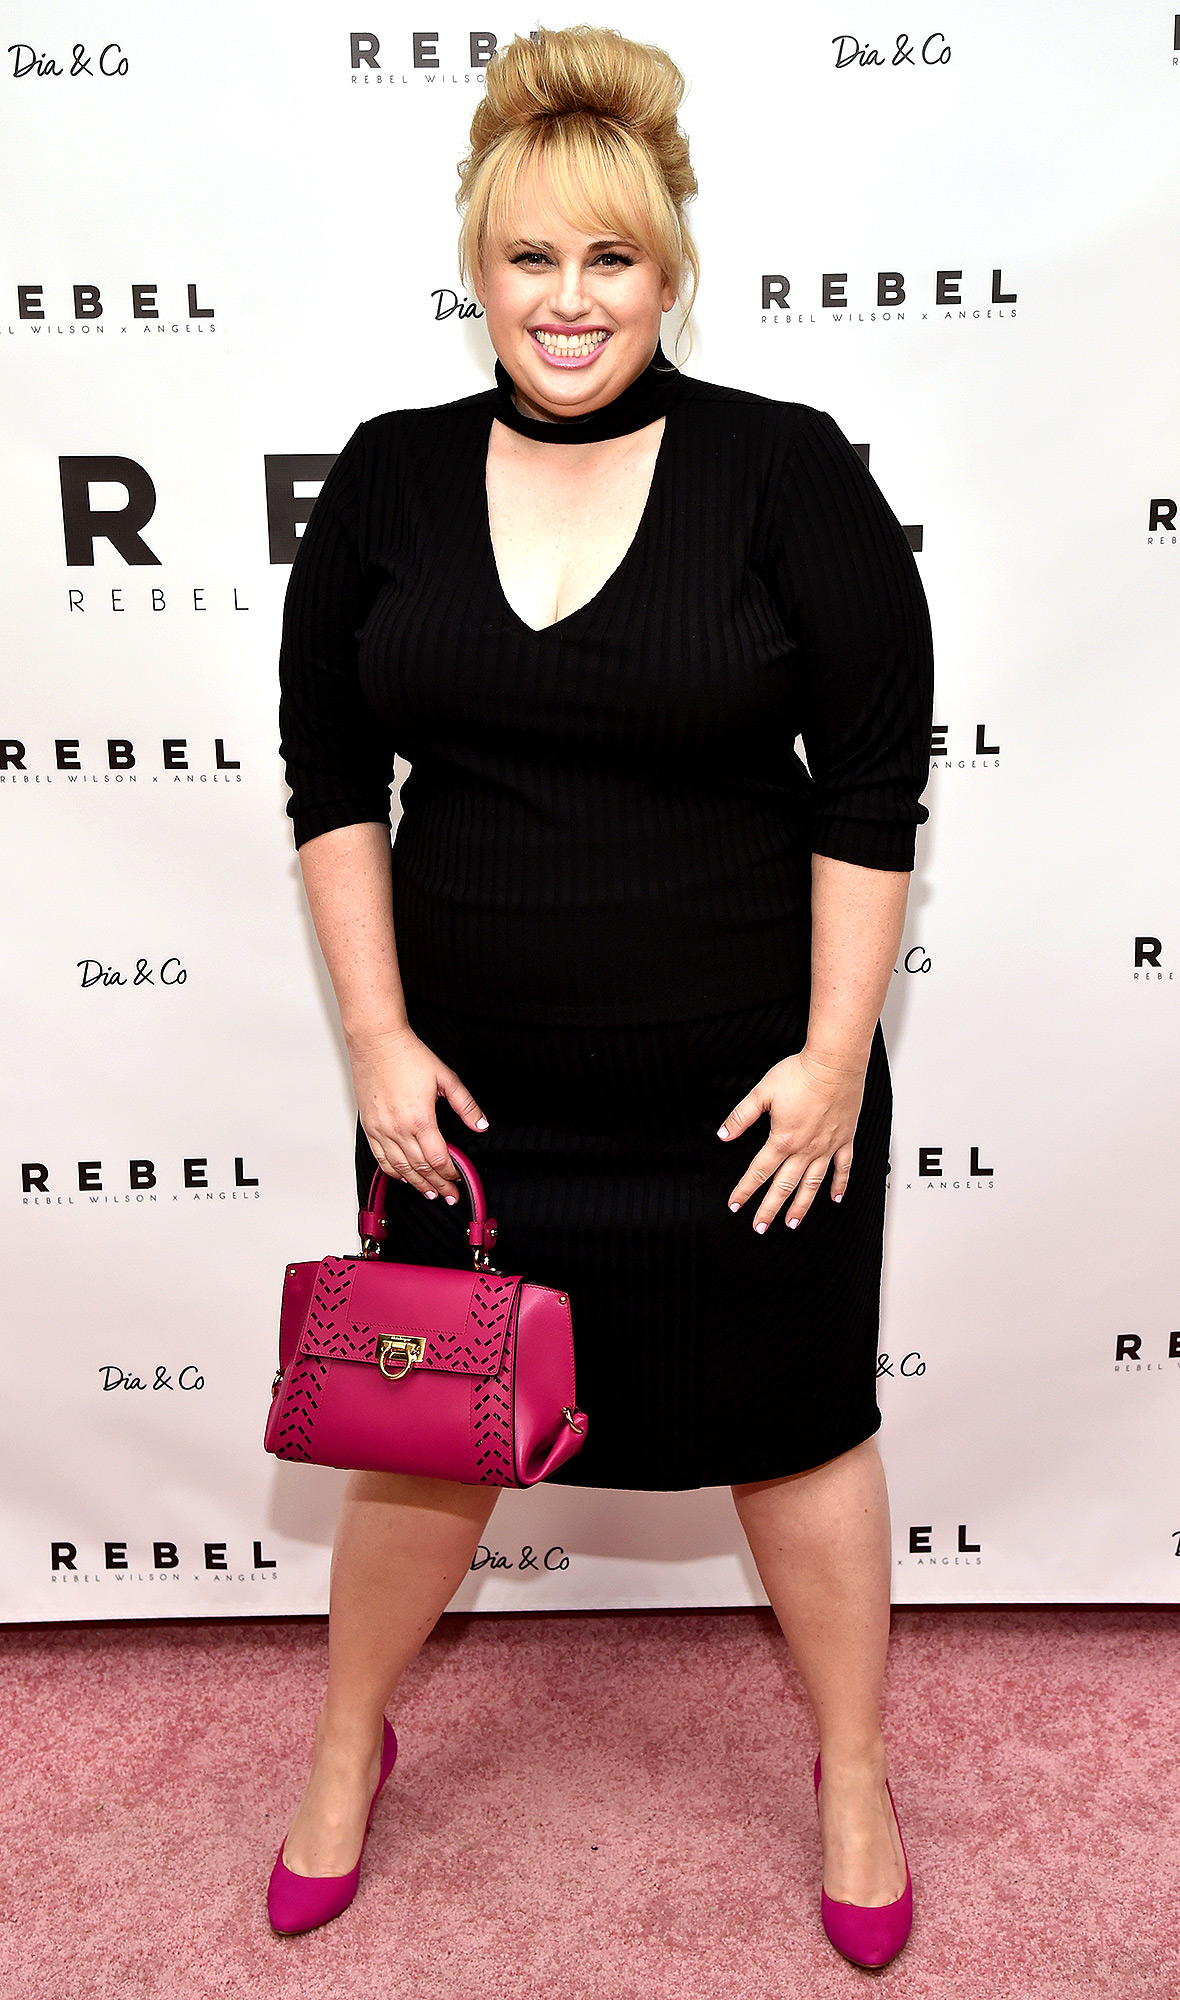 Rebel Wilson At The REBEL WILSON X ANGELS Collection Launch Party At Dia&Co In New York City